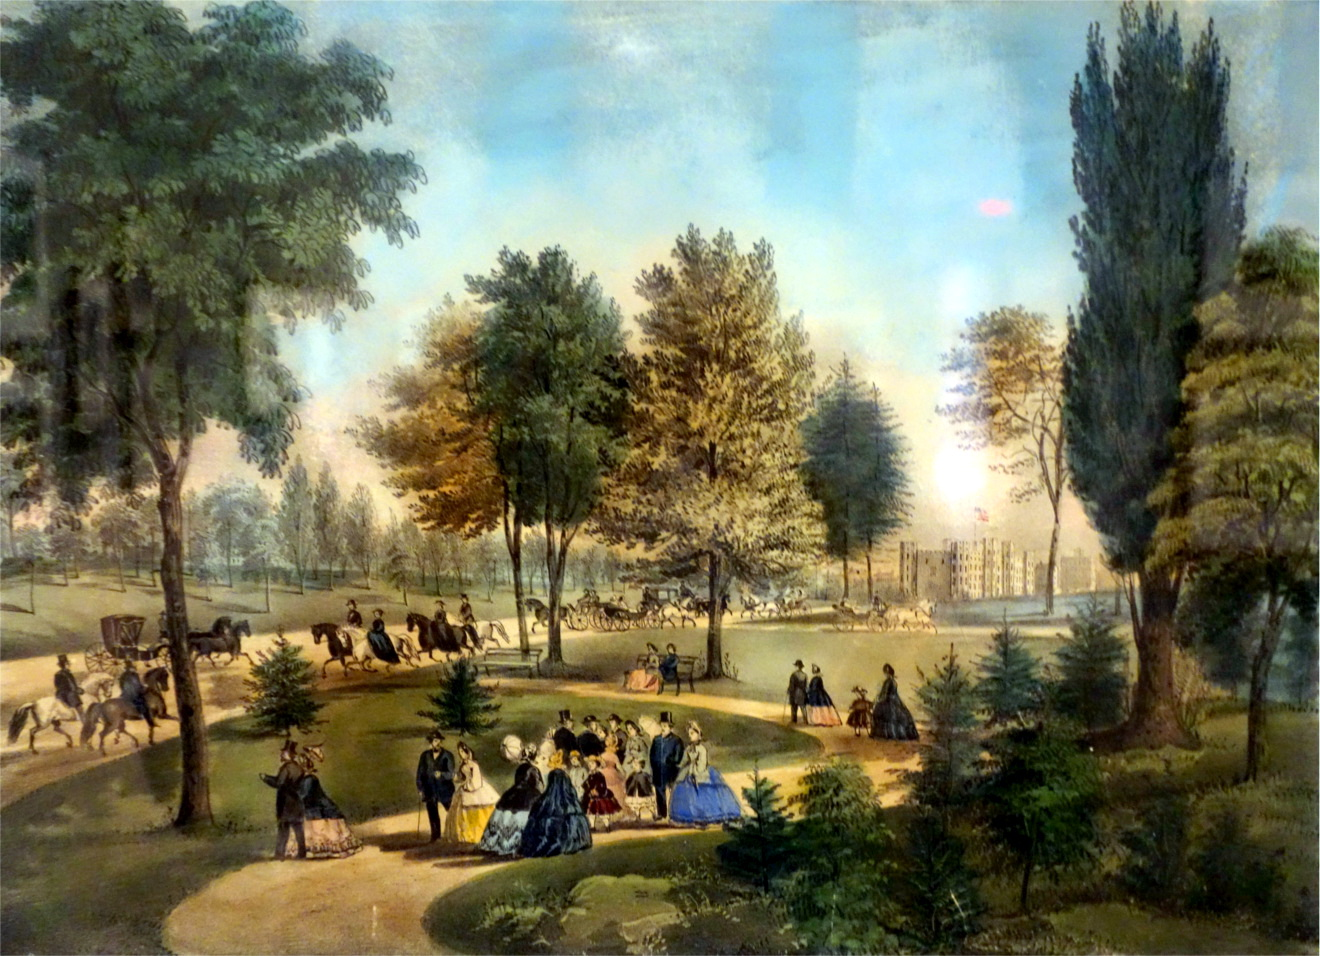 Central Park by Currier & Ives, 1862